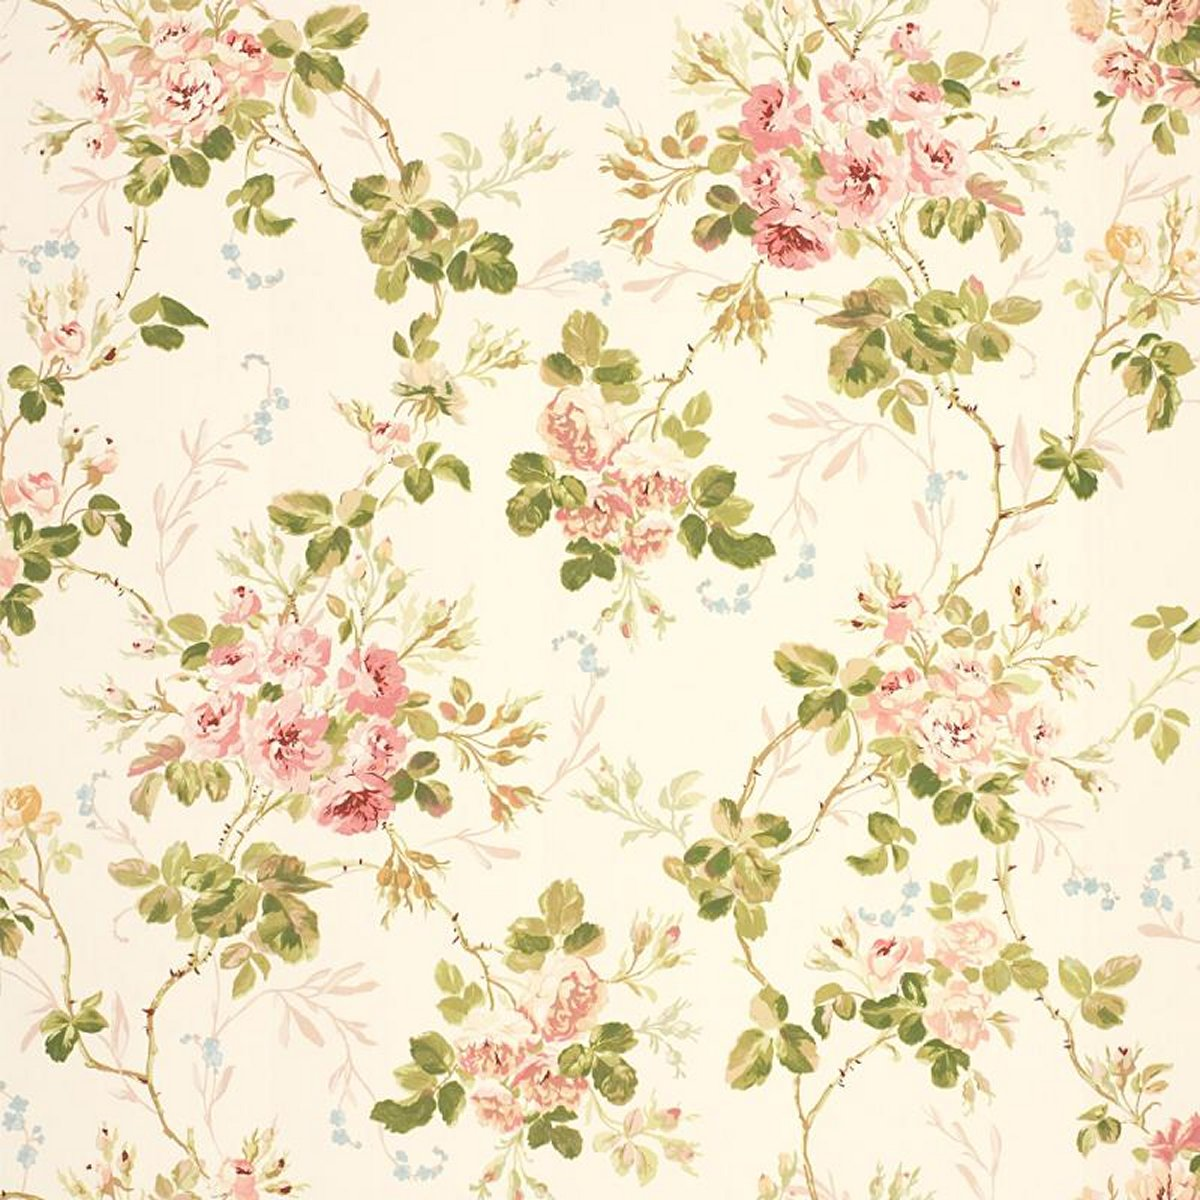 Backgrounds Vint...Vintage Floral Background Pattern Tumblr